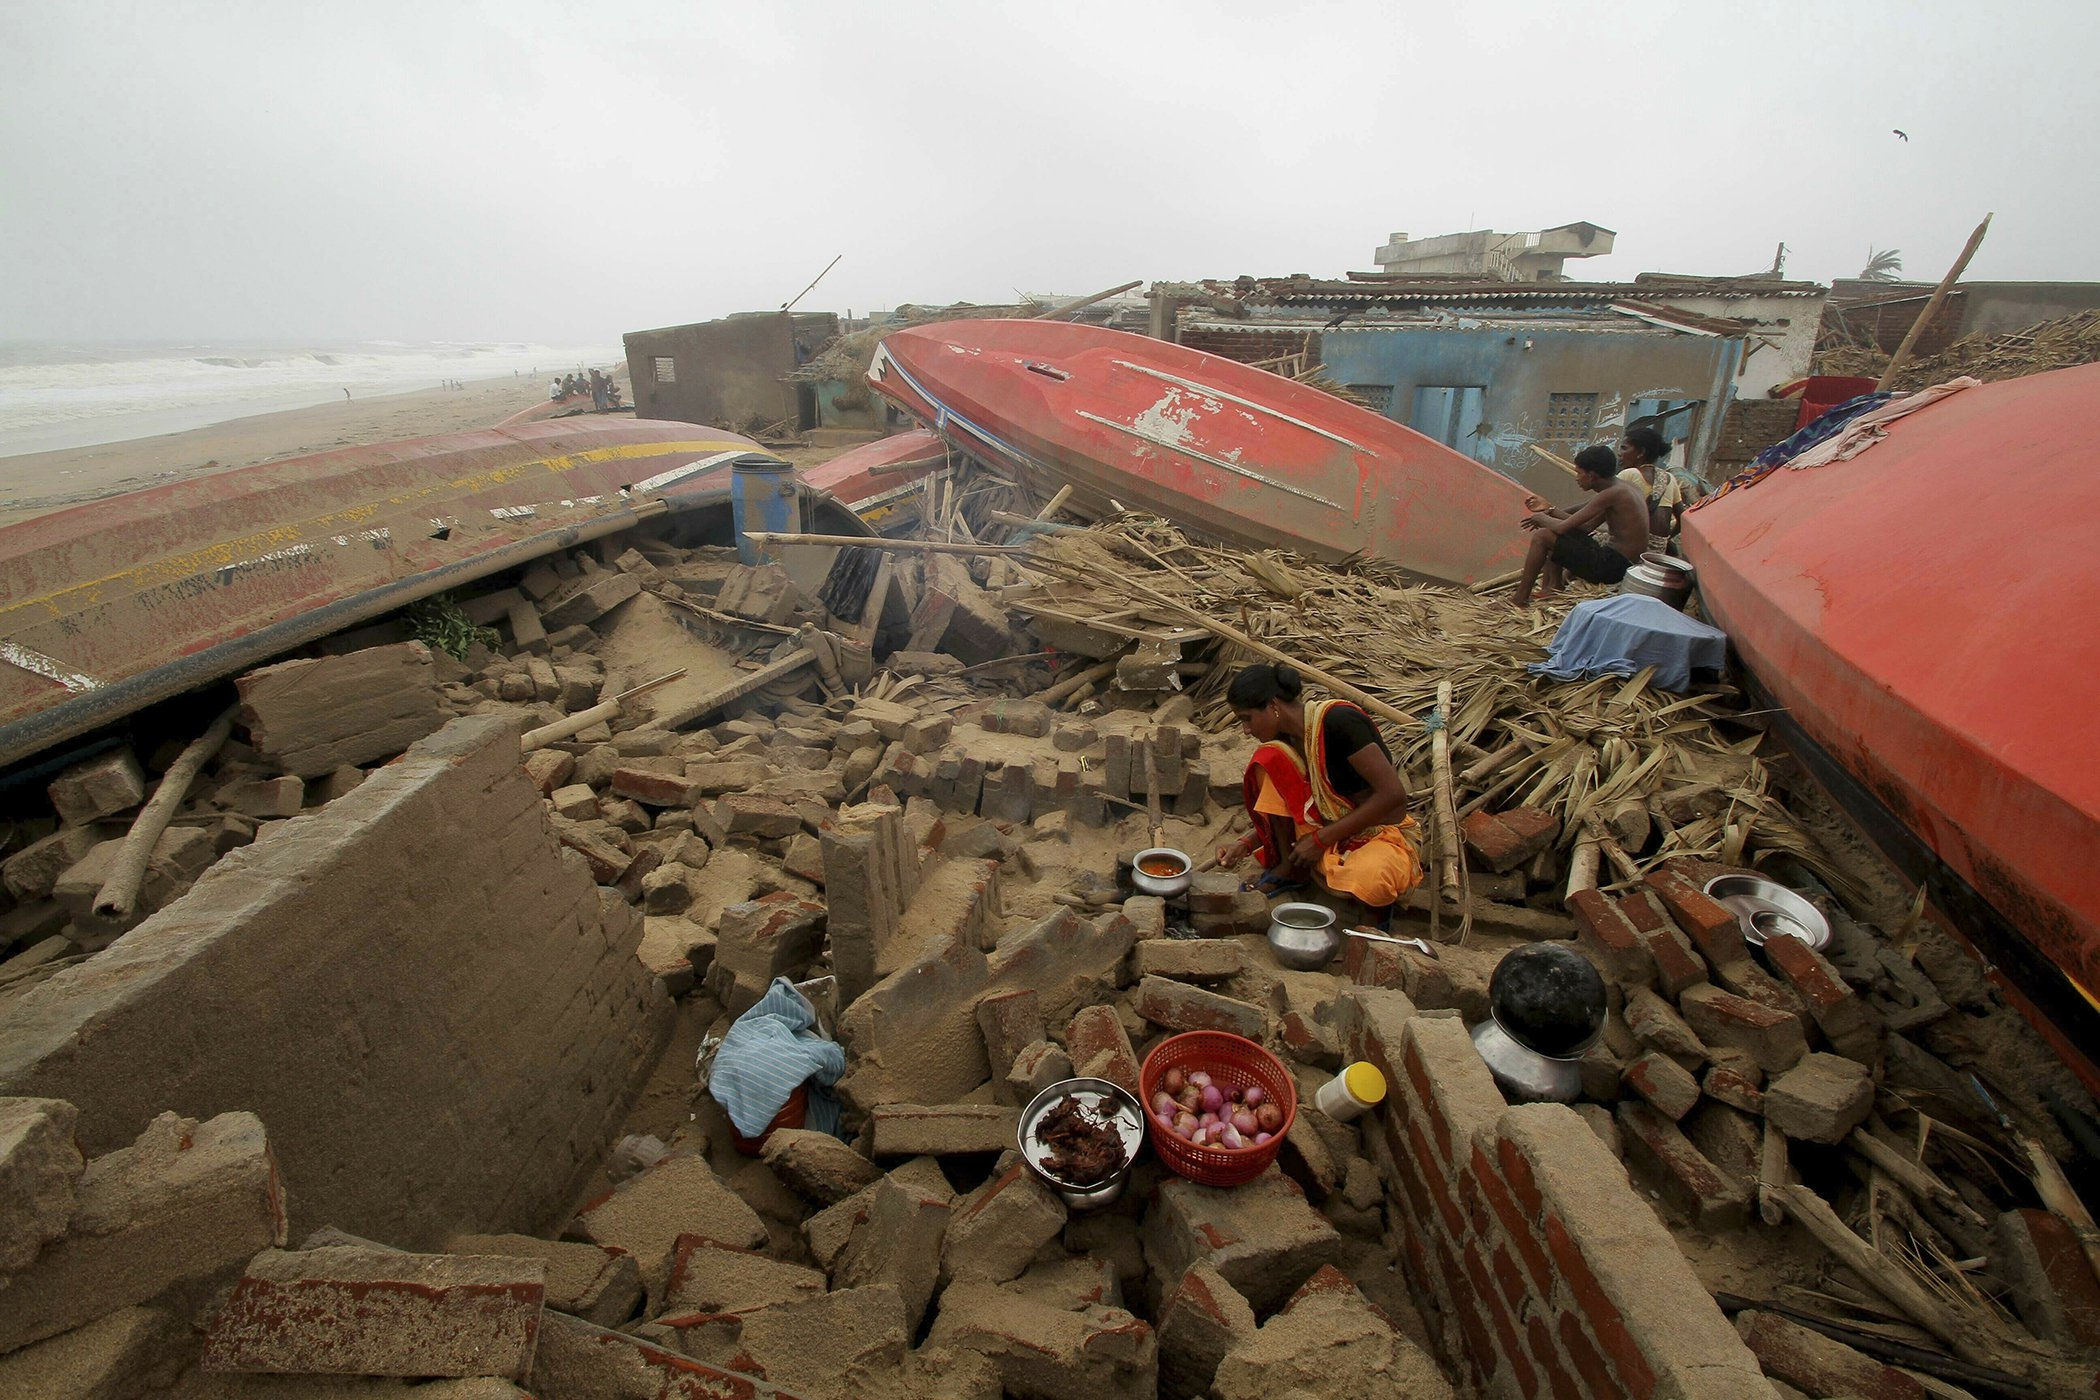 Cyclone-Fani-India-Bangladesh-How-To-Help-002.jpg